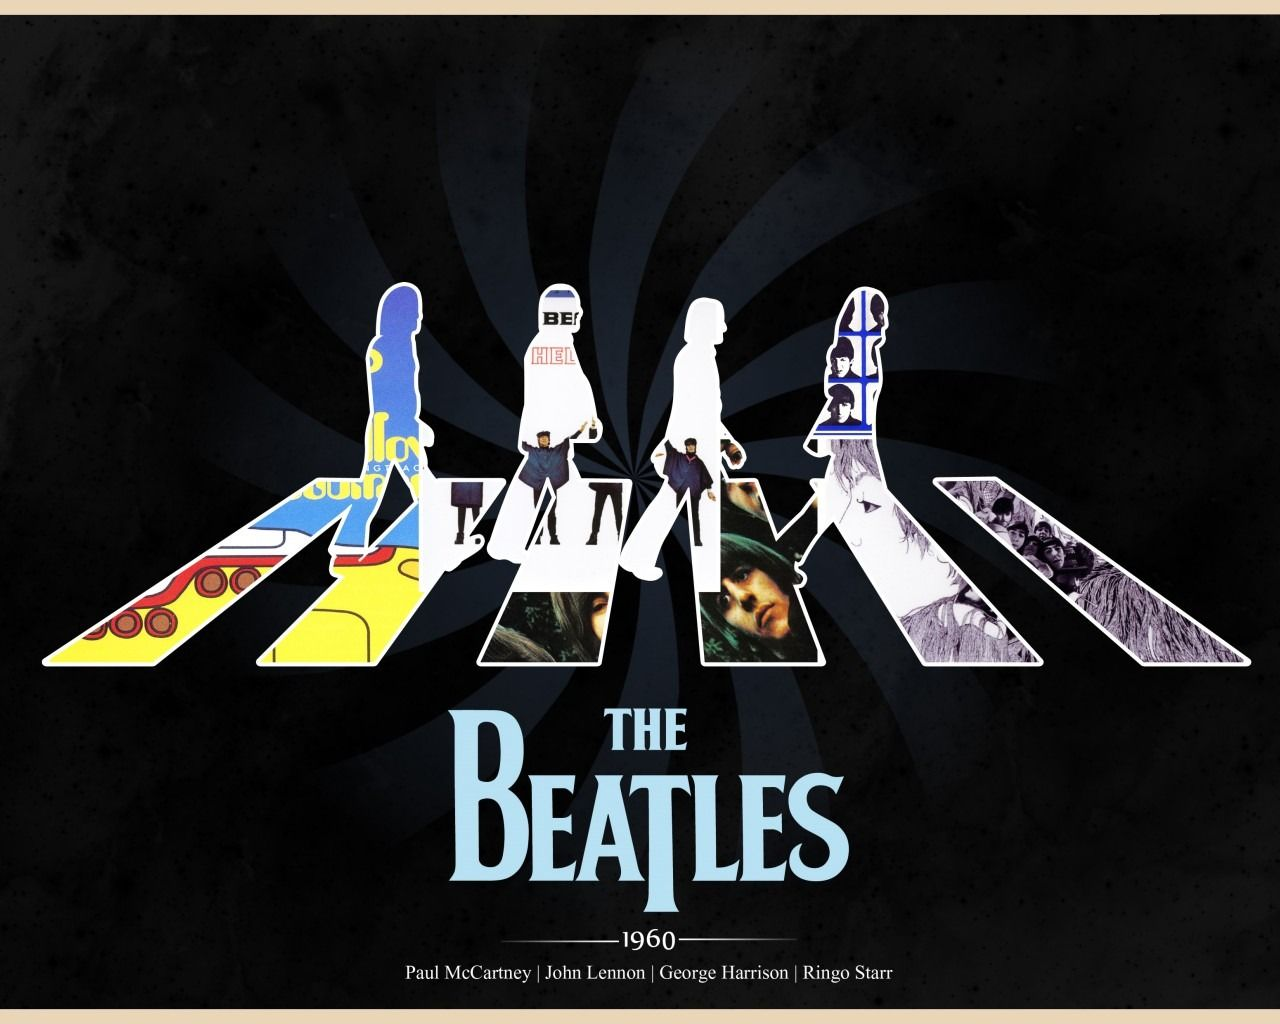 the beatles wallpaper the beatles pinterest beatles